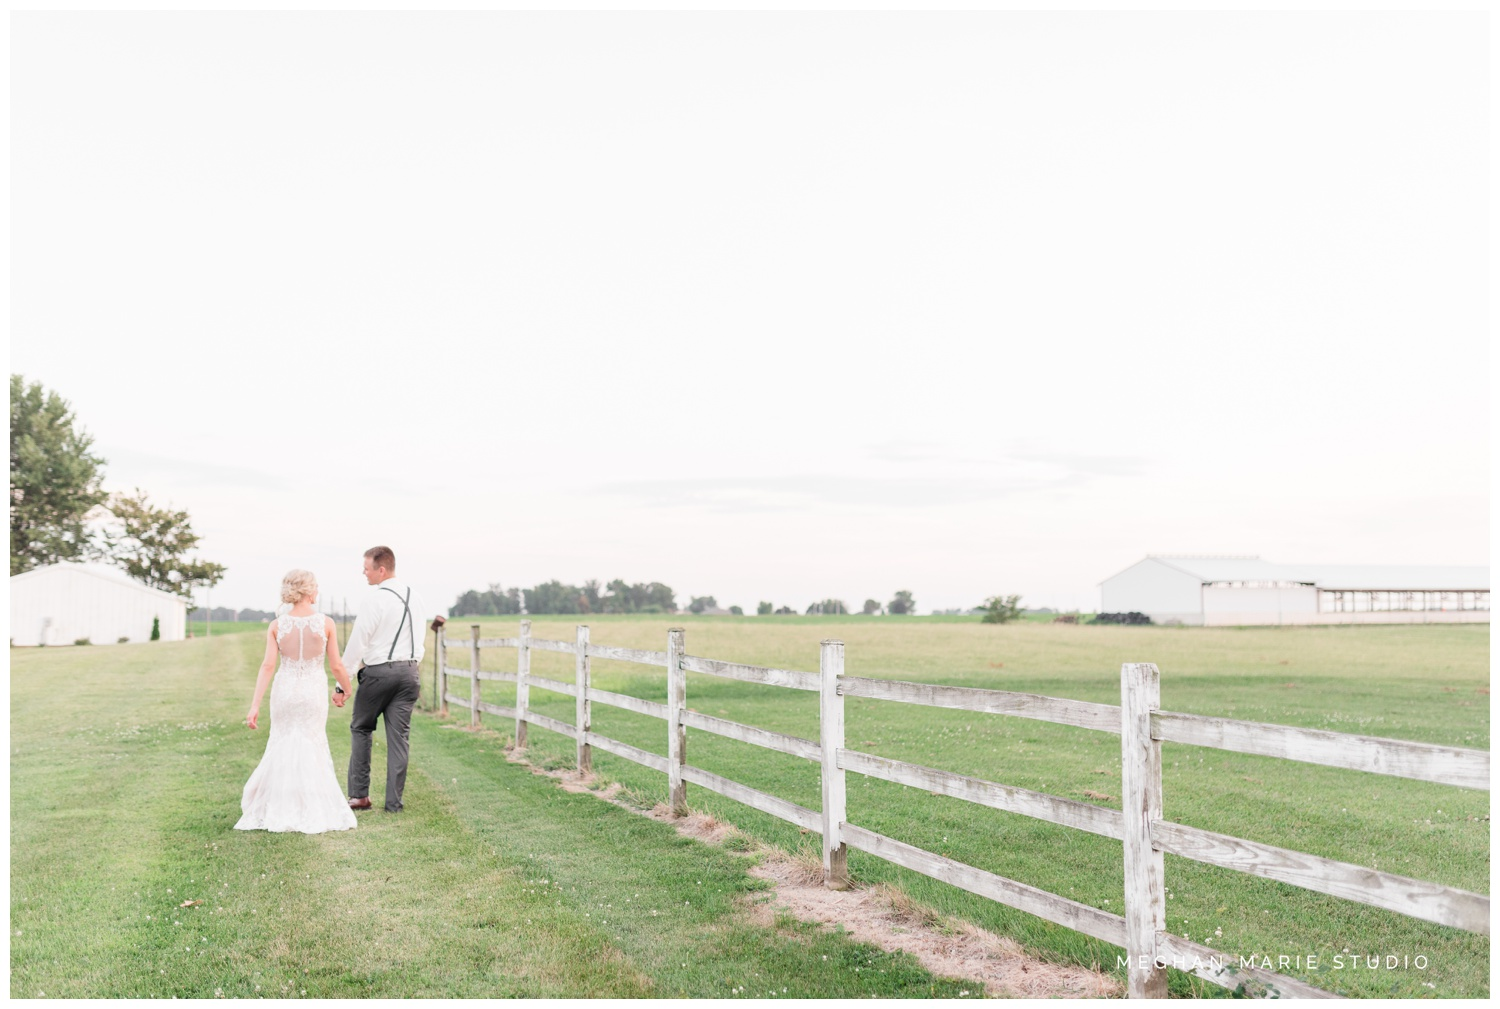 meghan marie studio wedding photographer ohio troy dayton columbus small town rustic rural farm cows vintage mauves dusty rose pinks whites ivorys grays f1 sound paper lanterns pearls_0661.jpg